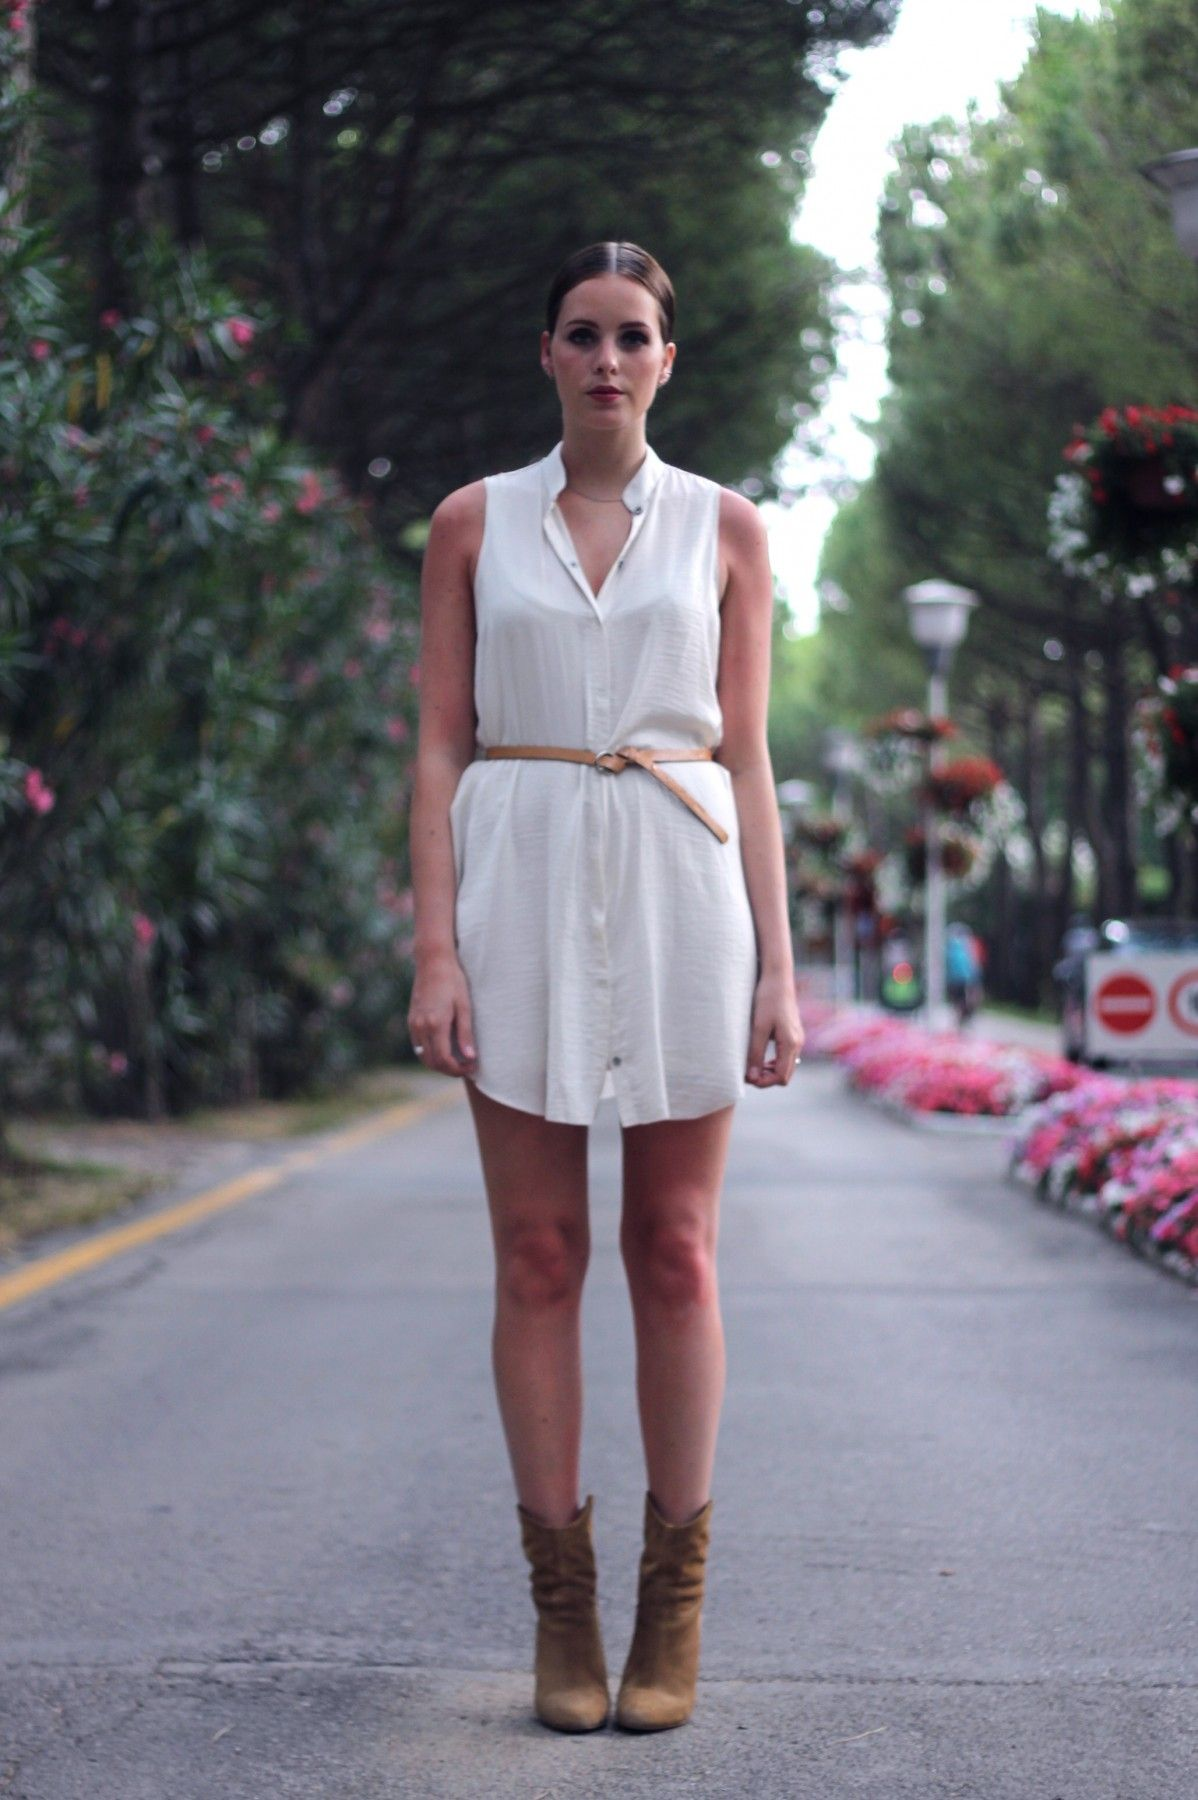 Oh Ha-Young 오하영 | Dresses, Fashion, White dress